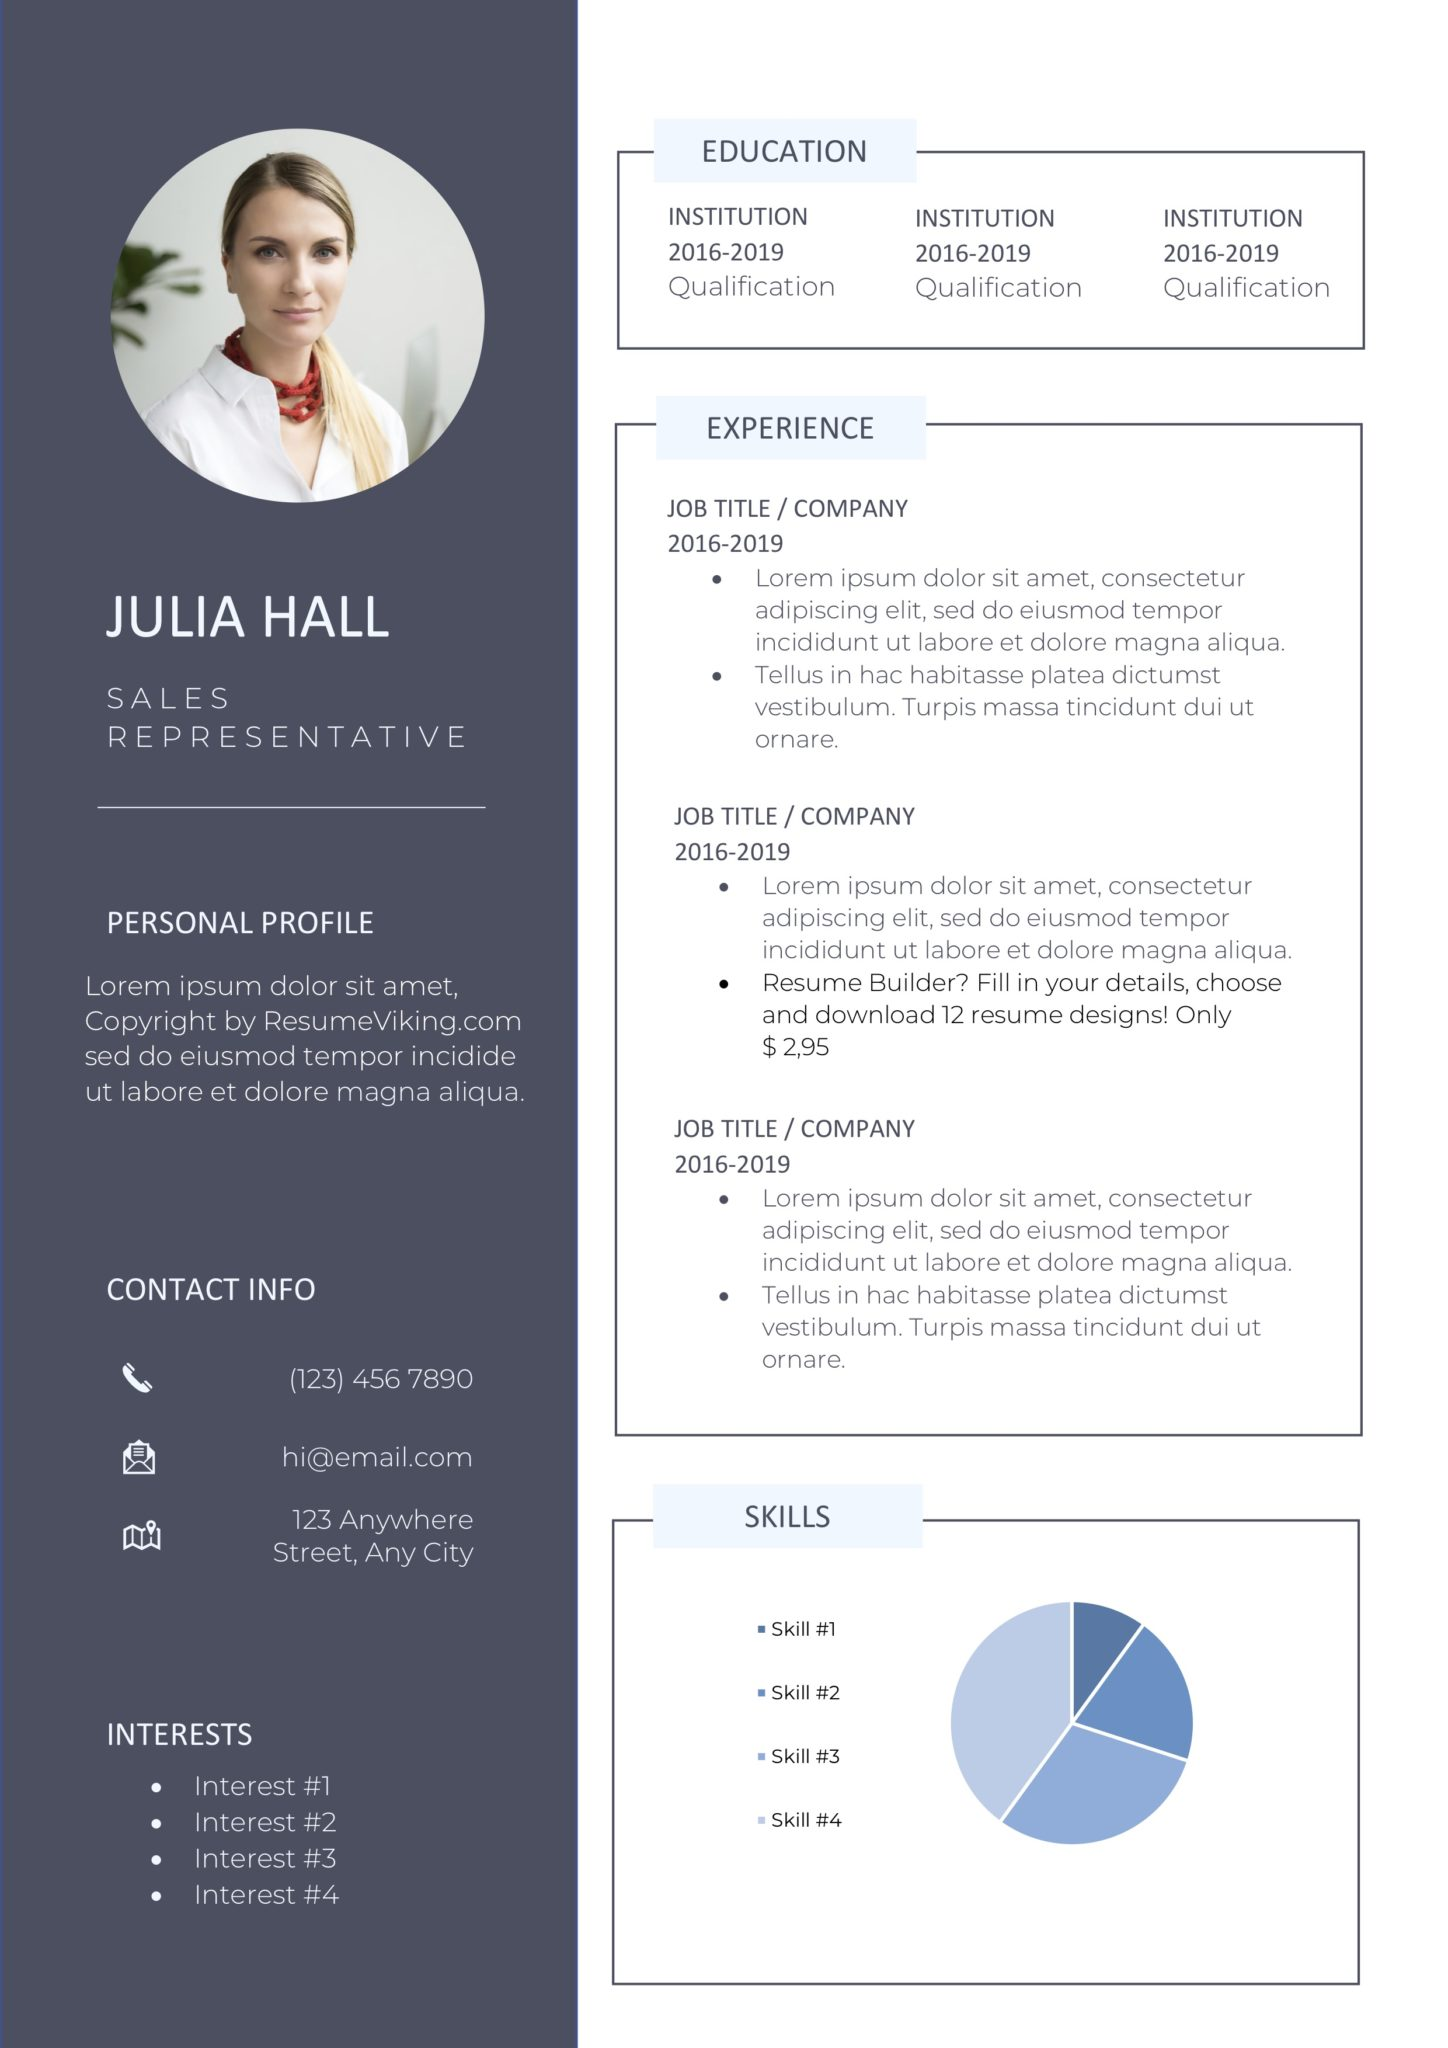 free word resume templates in ms simple template resumeviking scaled peace corps updated Resume Simple Resume Template Free Download Word